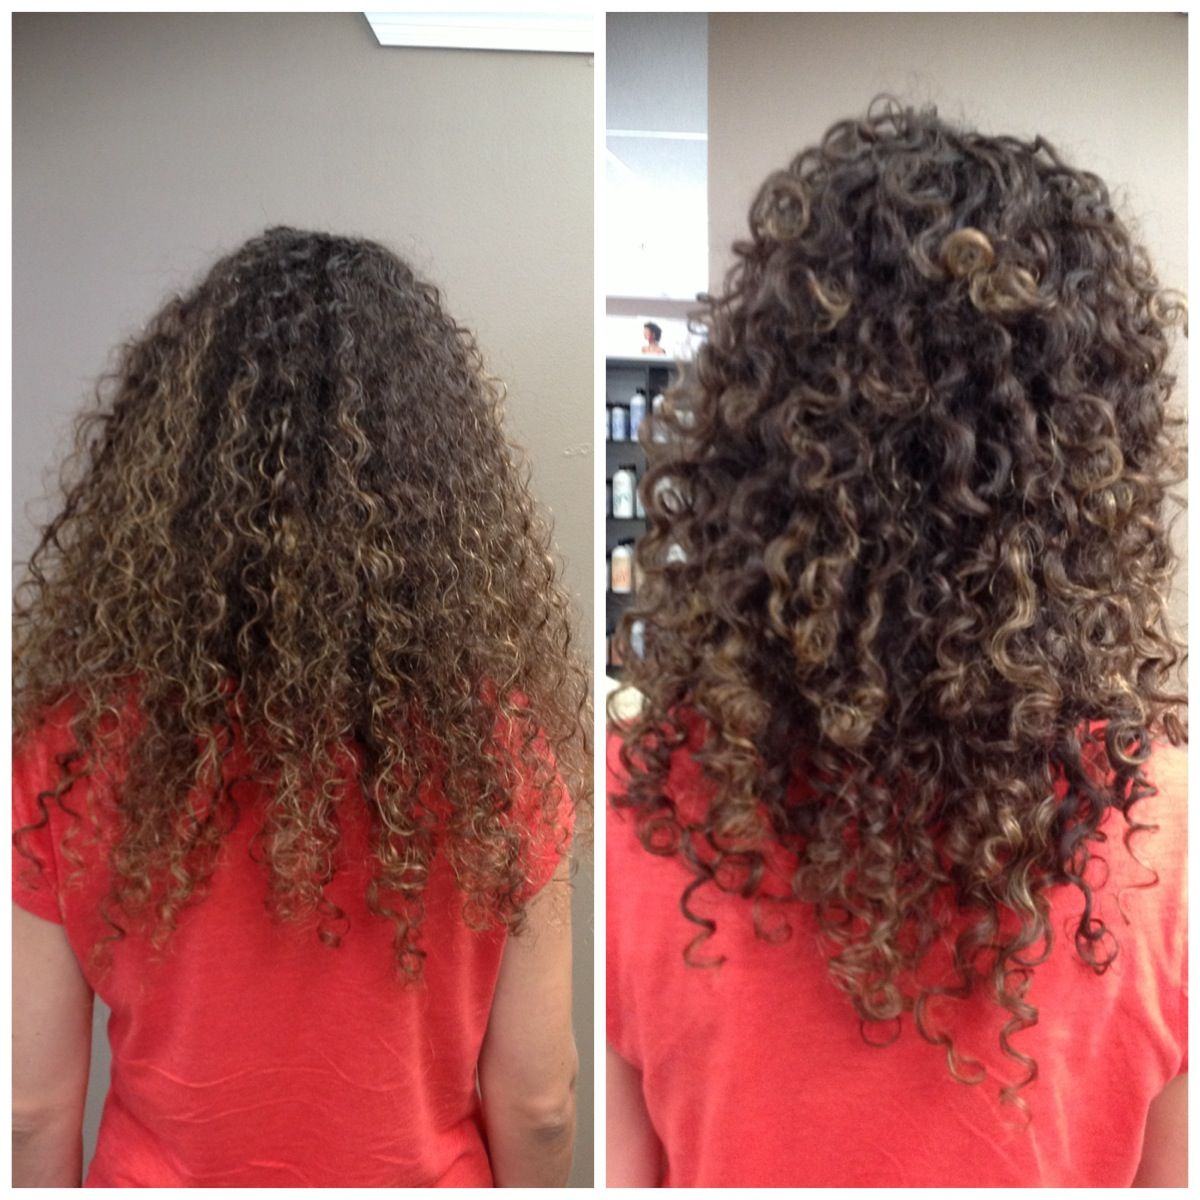 Before And After Ouidad Deep Treatment Hair Cut And Style Done By